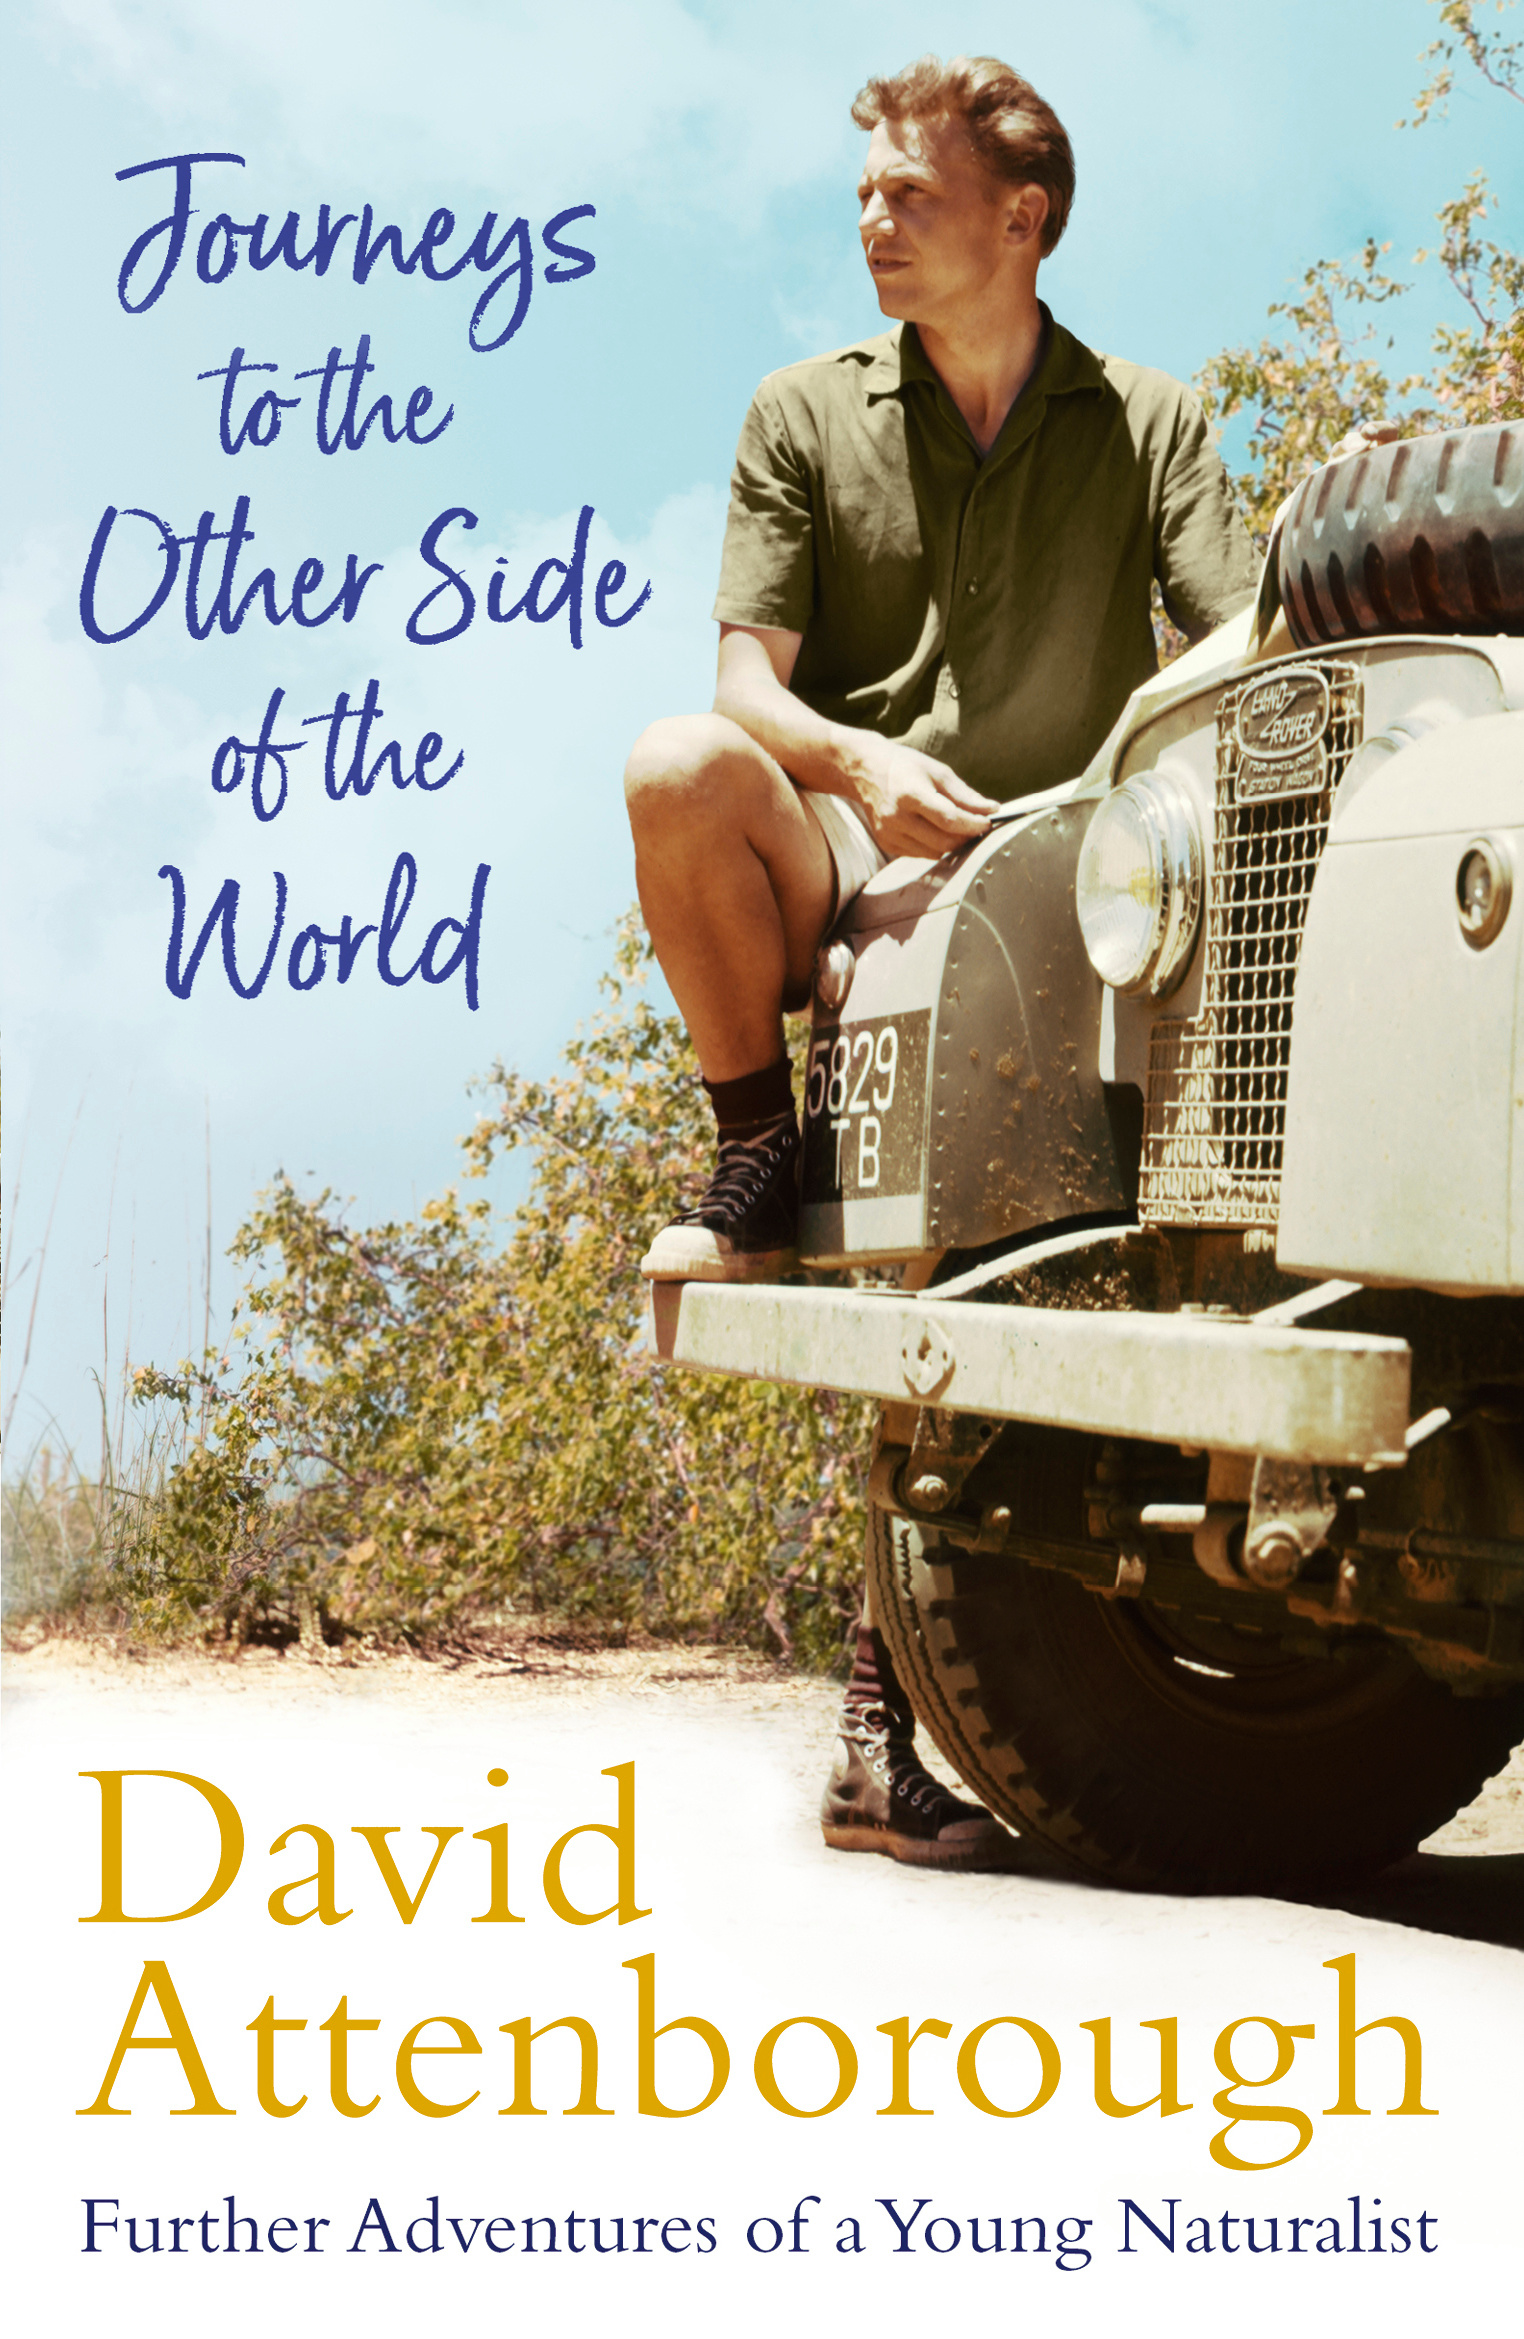 Image result for journeys to the other side of the world david attenborough book cover